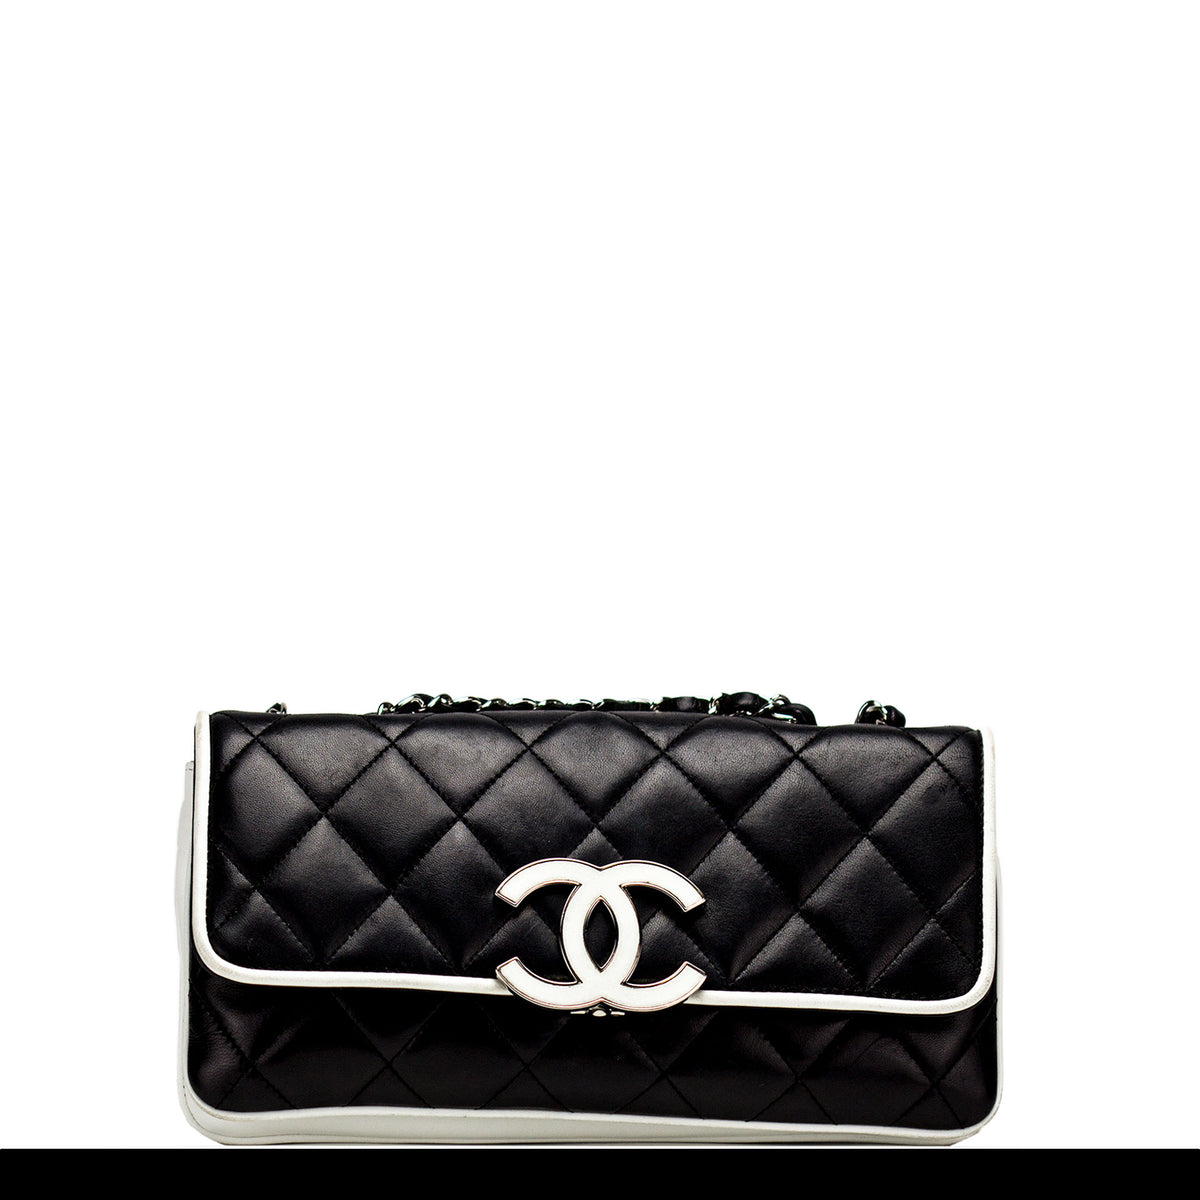 92be84264ce95a Chanel Black and White Medium Cruise Flap – House of Carver